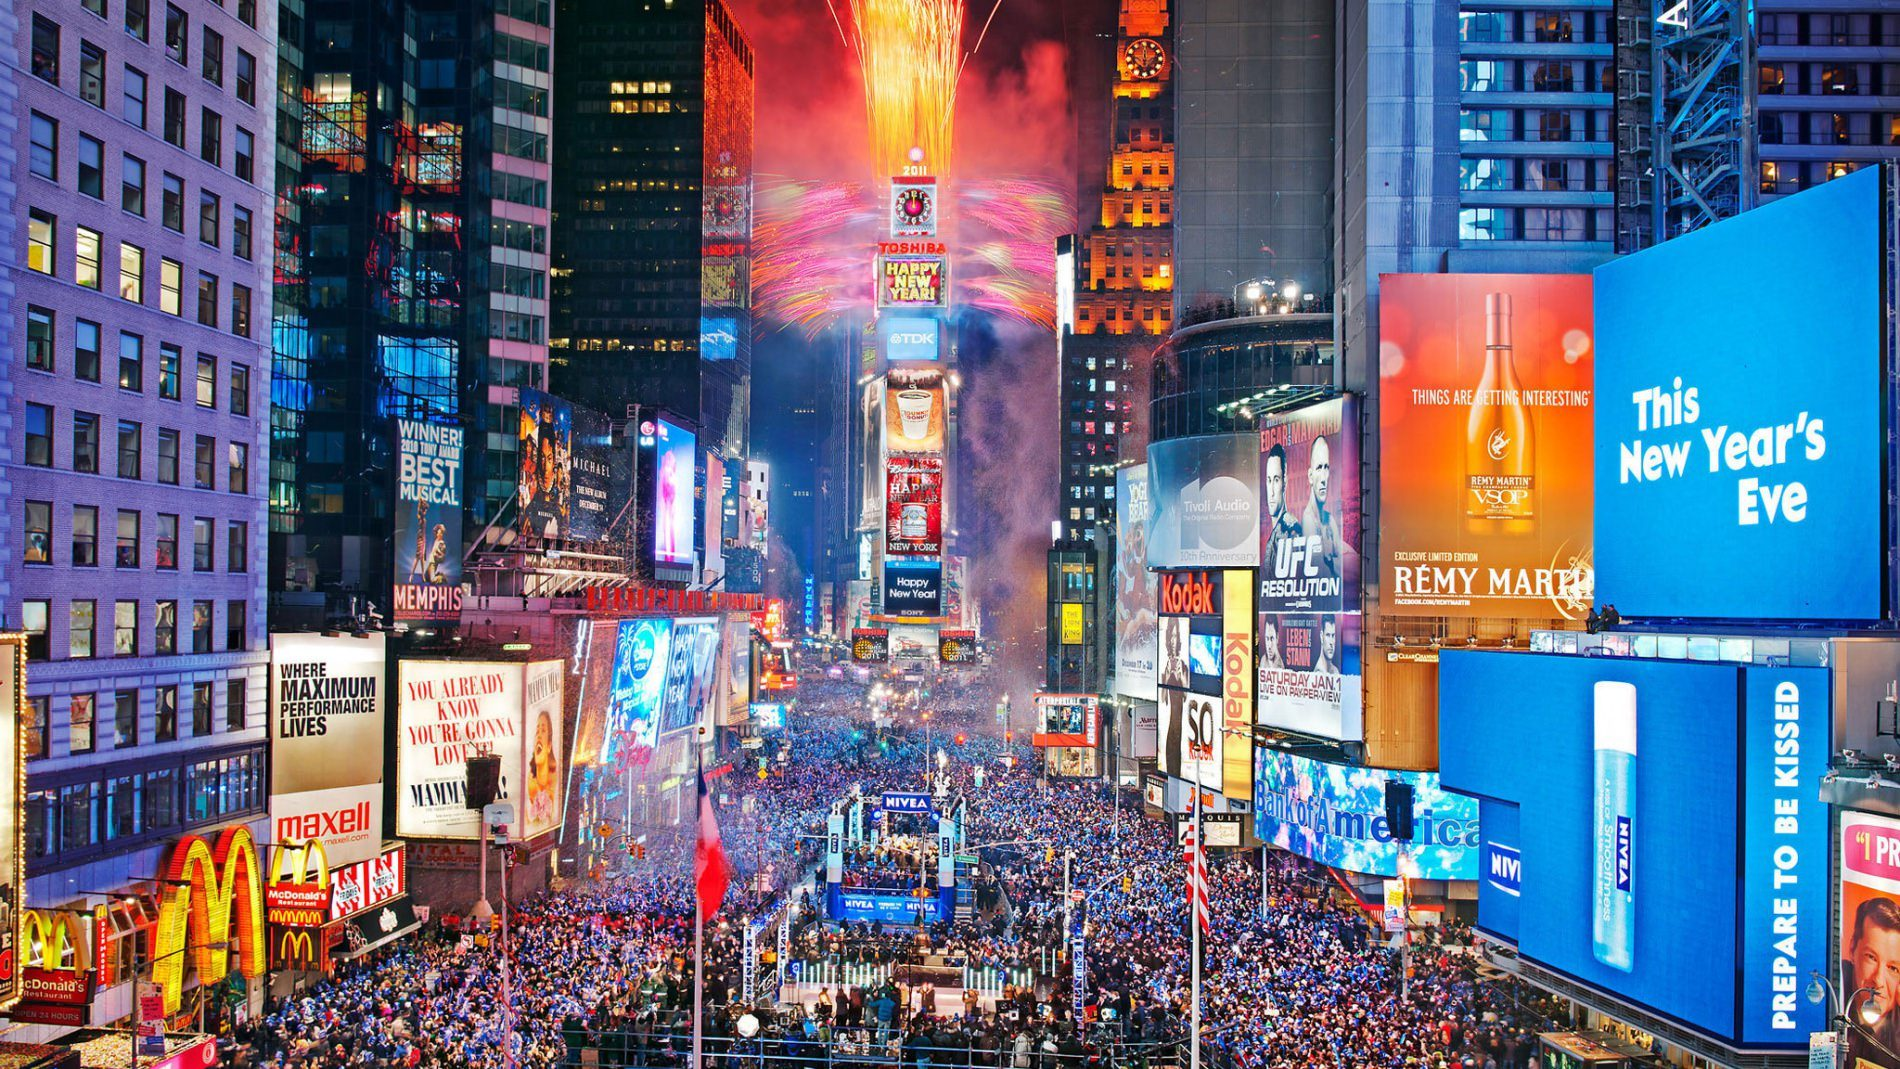 NYPD-drones-will-guard-NYE-ball-drop-at-Times-Square.jpg